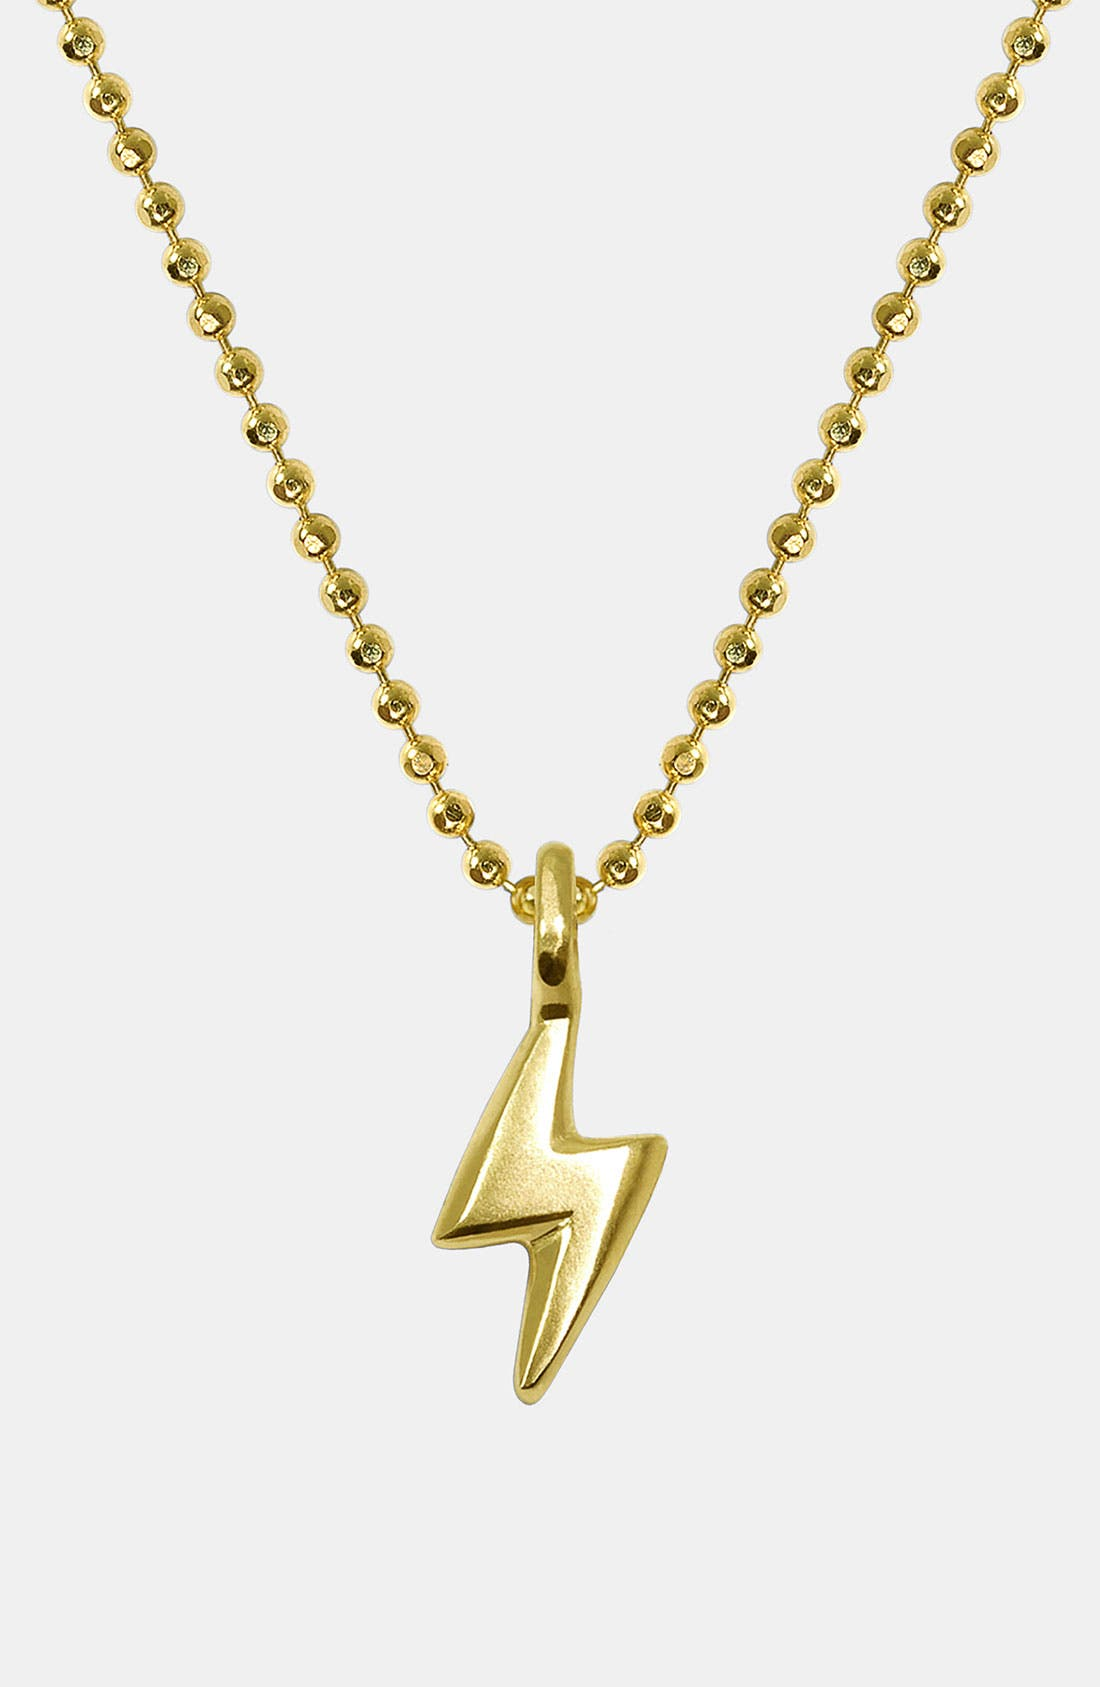 Main Image - Alex Woo 'Mini Lightening Bolt' 14k Gold Pendant Necklace